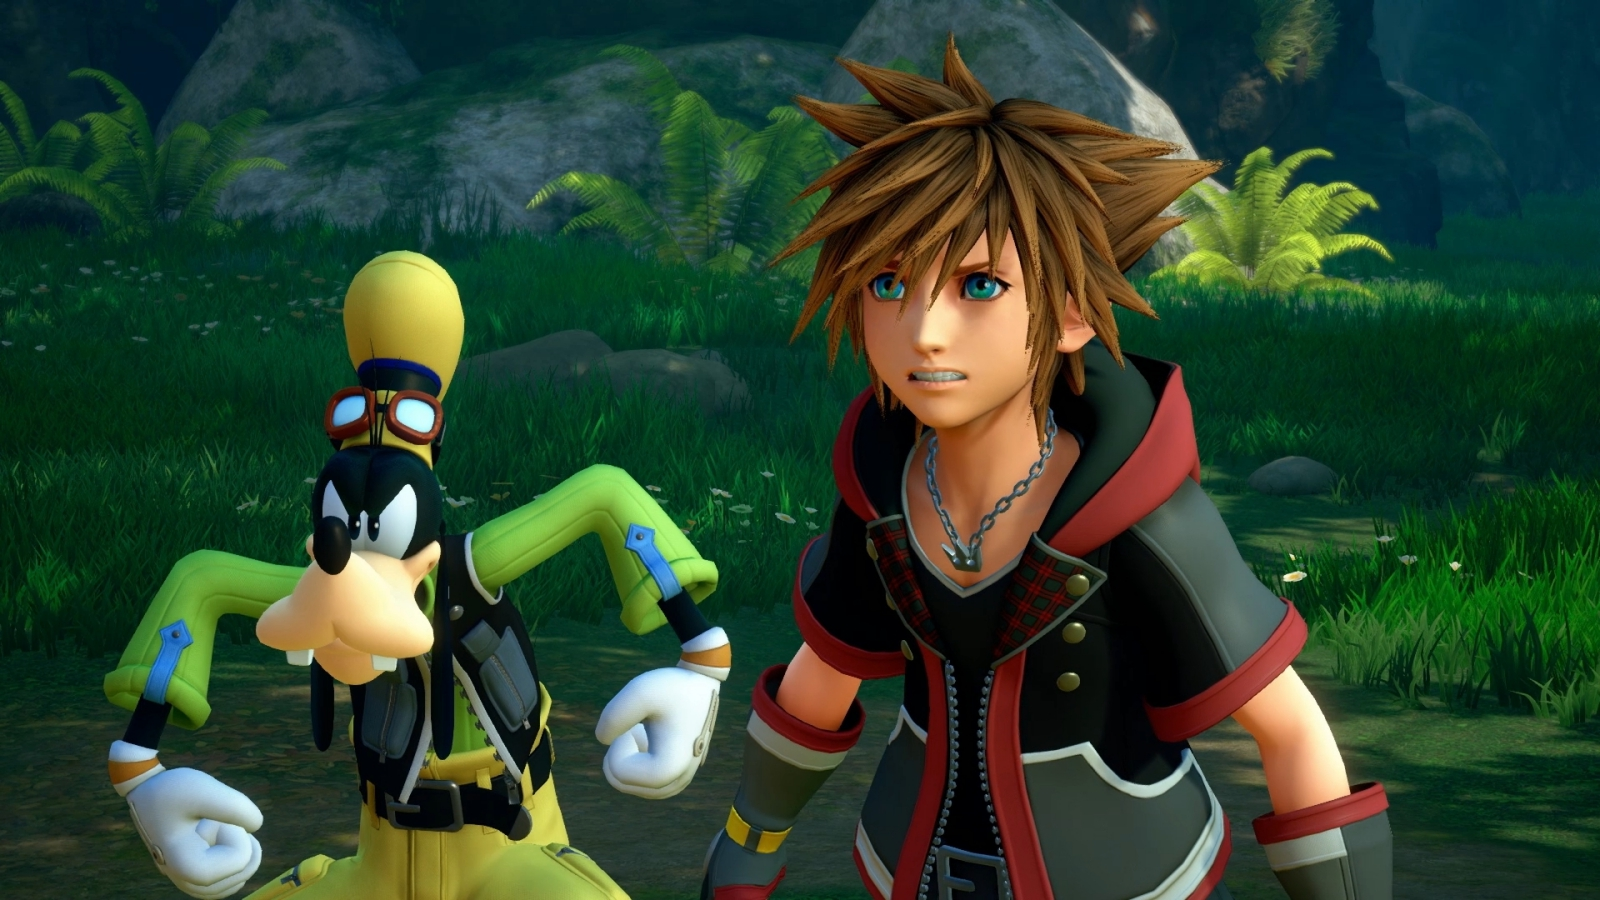 Kingdom Hearts 3: copie rubate e vendute online, arrestato il ladro thumbnail